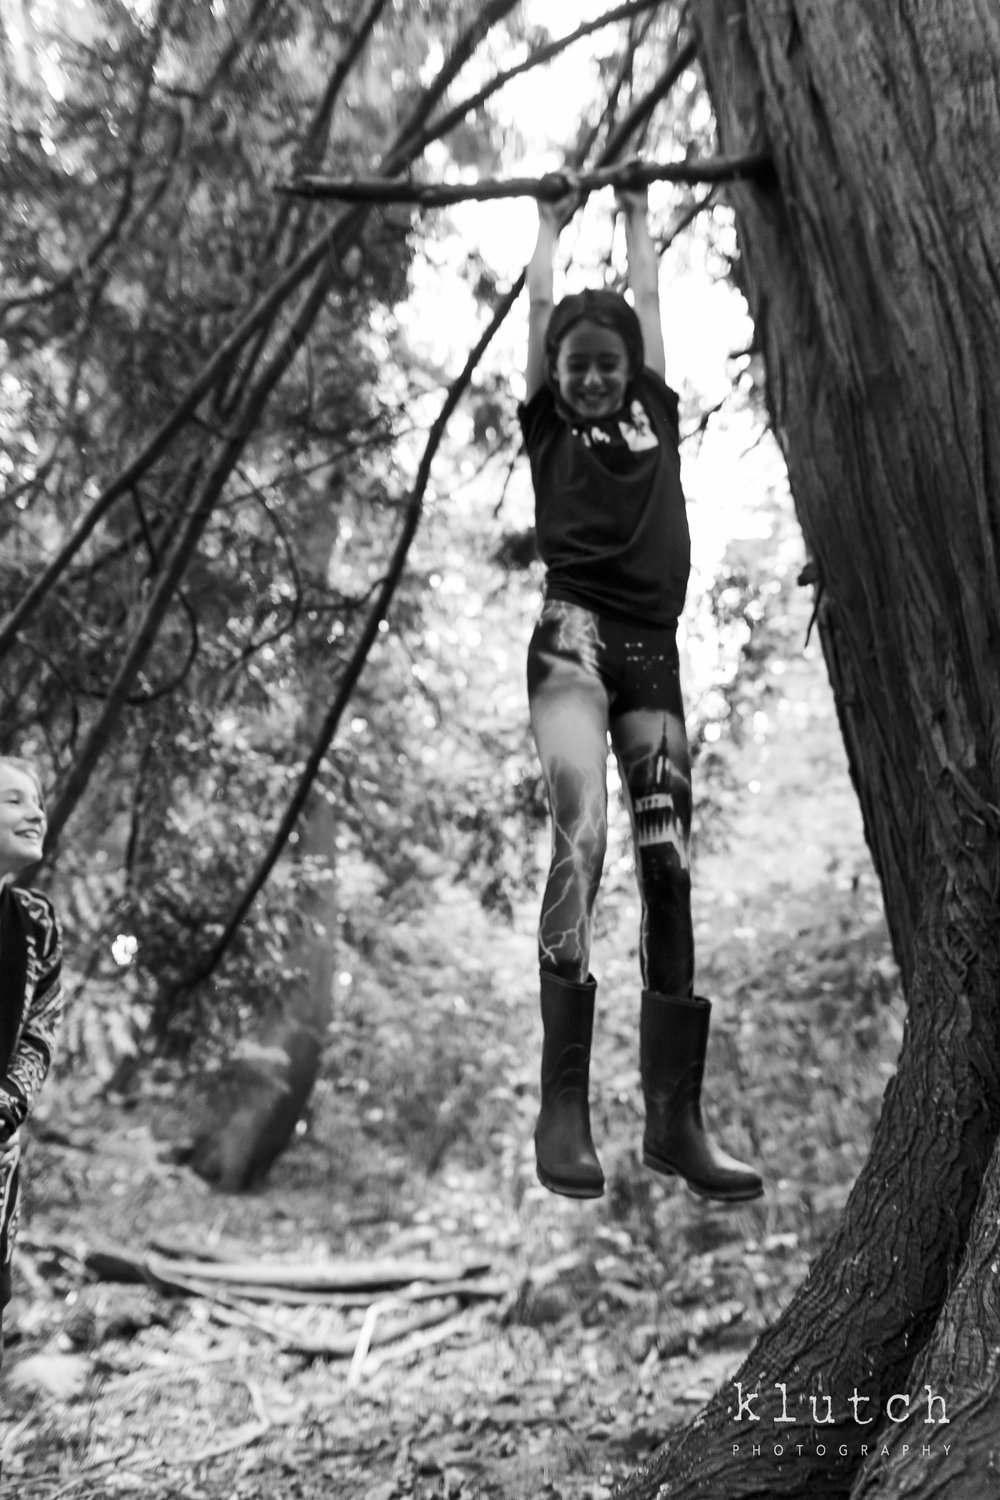 Girl dangling from tree branch